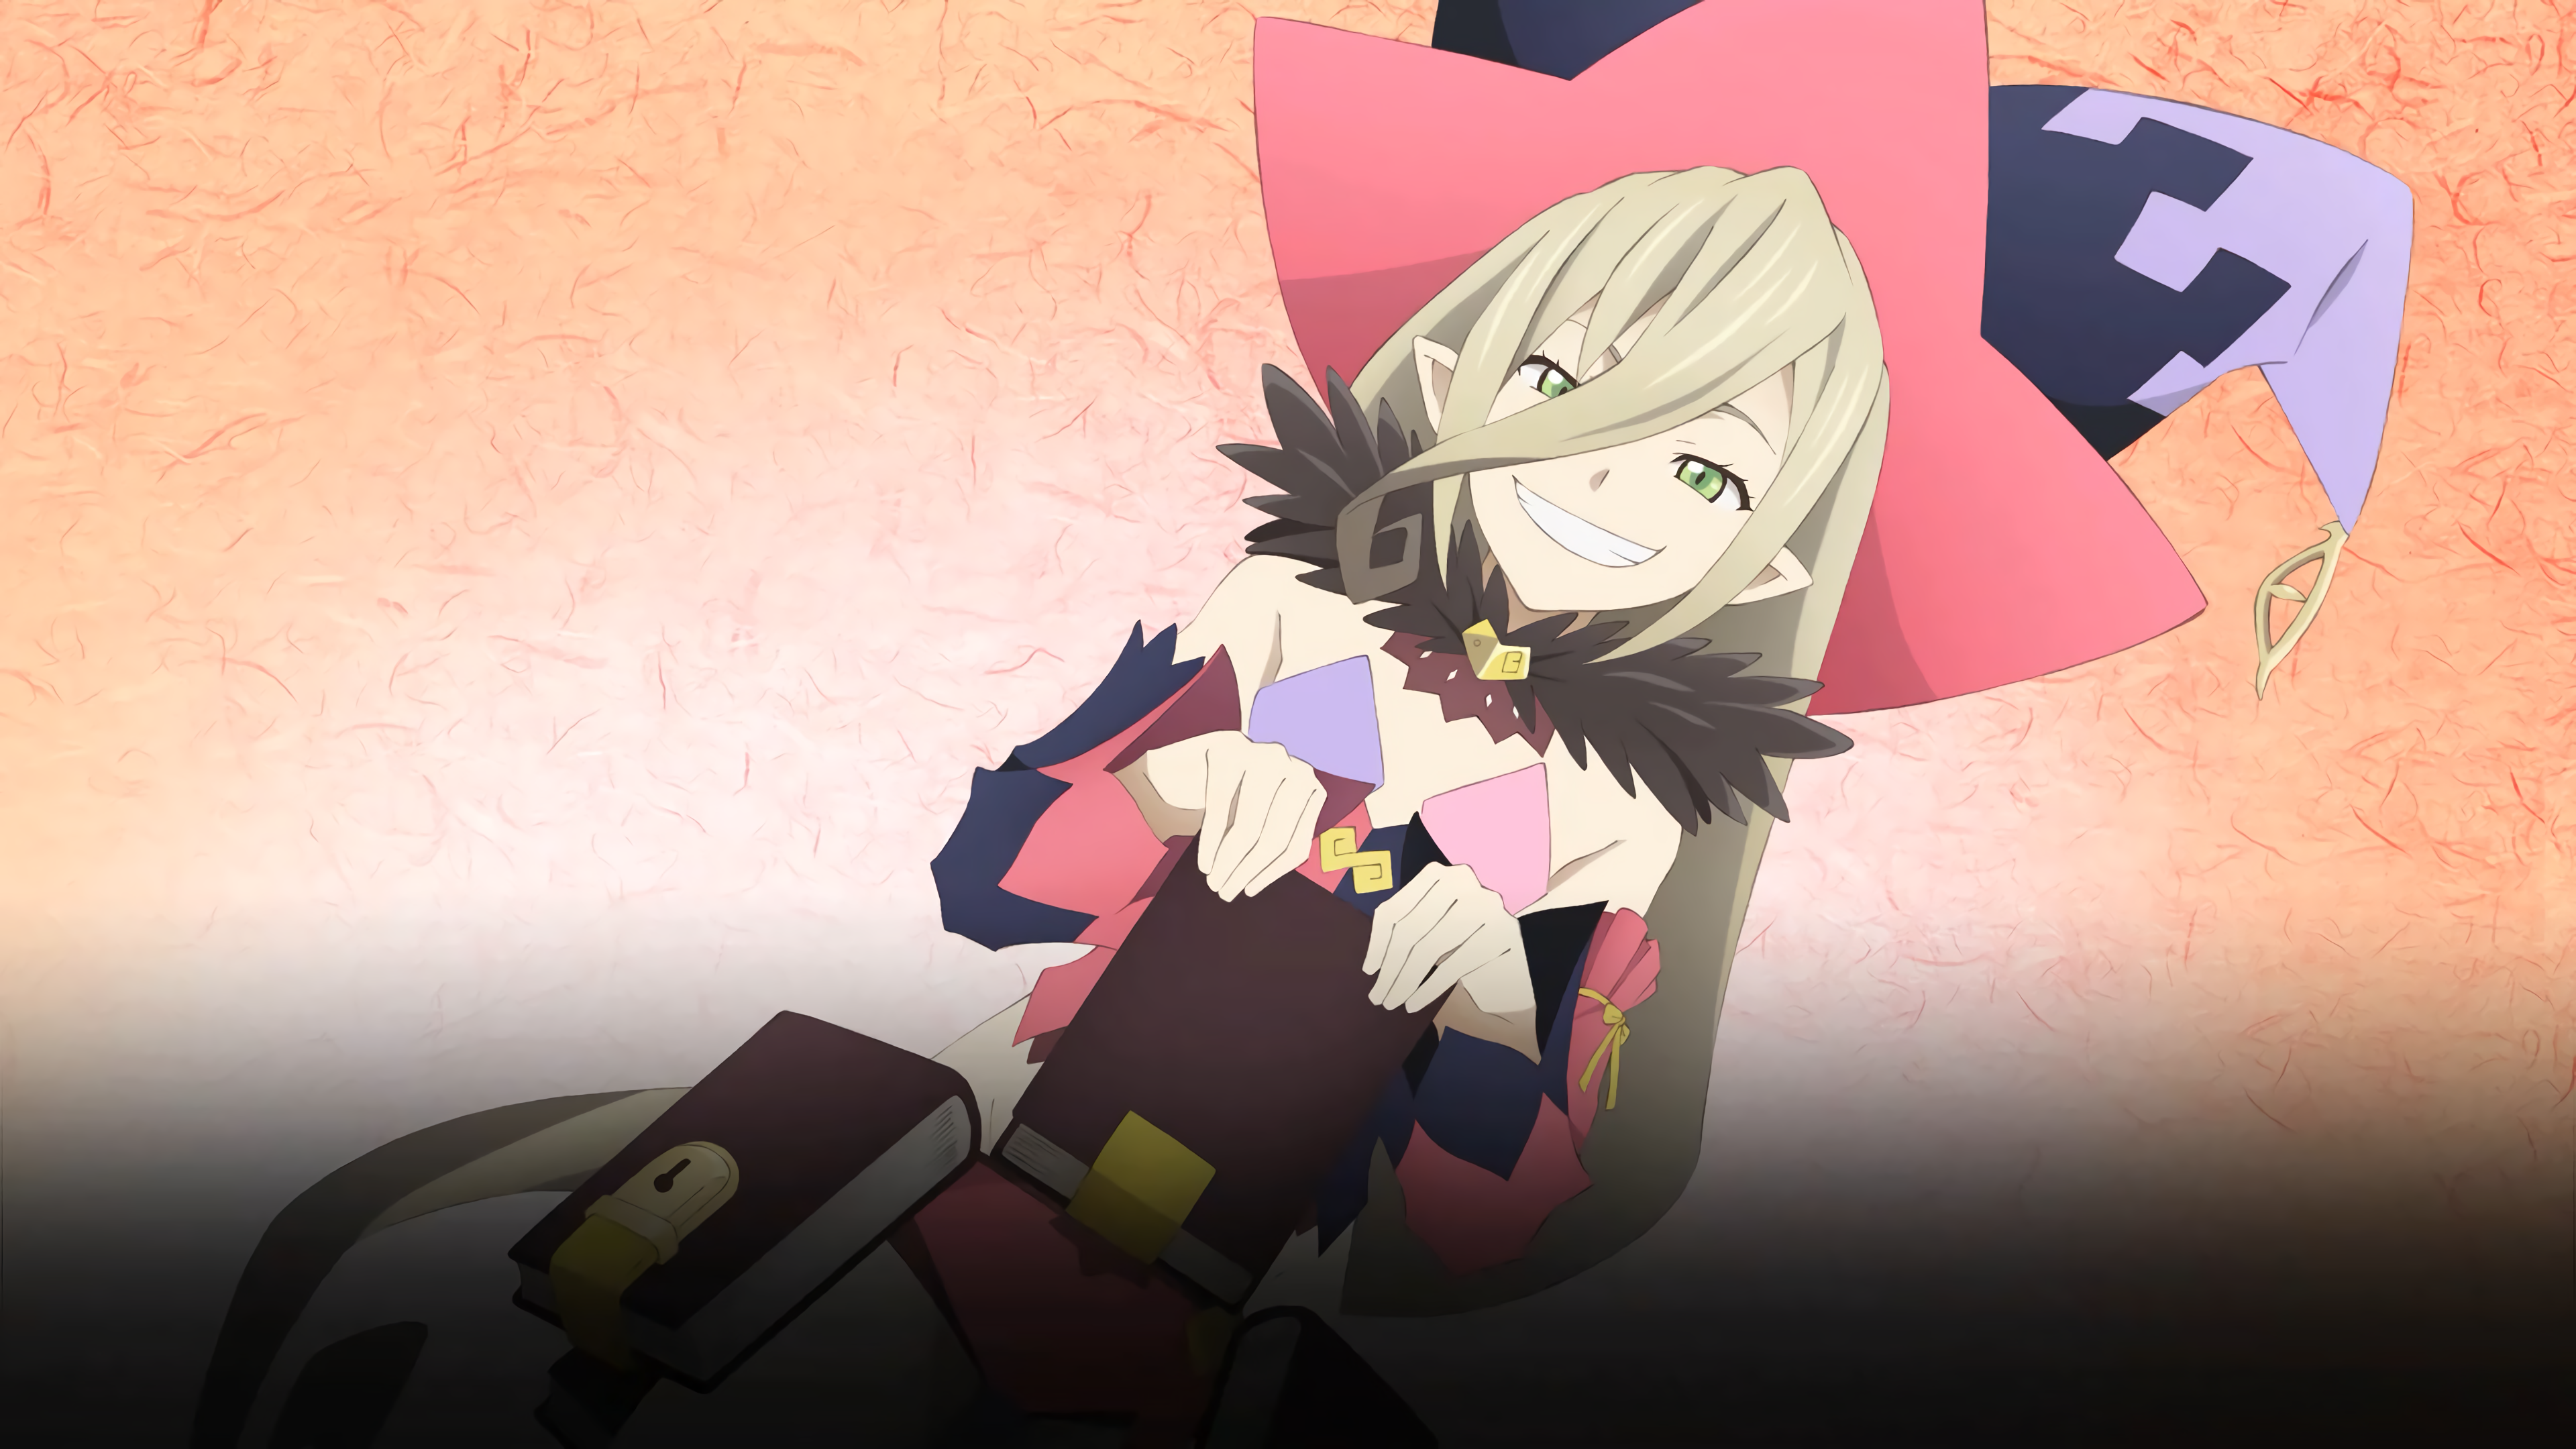 Magilou Wallpaper 2 Tales Of Berseria By Kaz Kirigiri On Deviantart